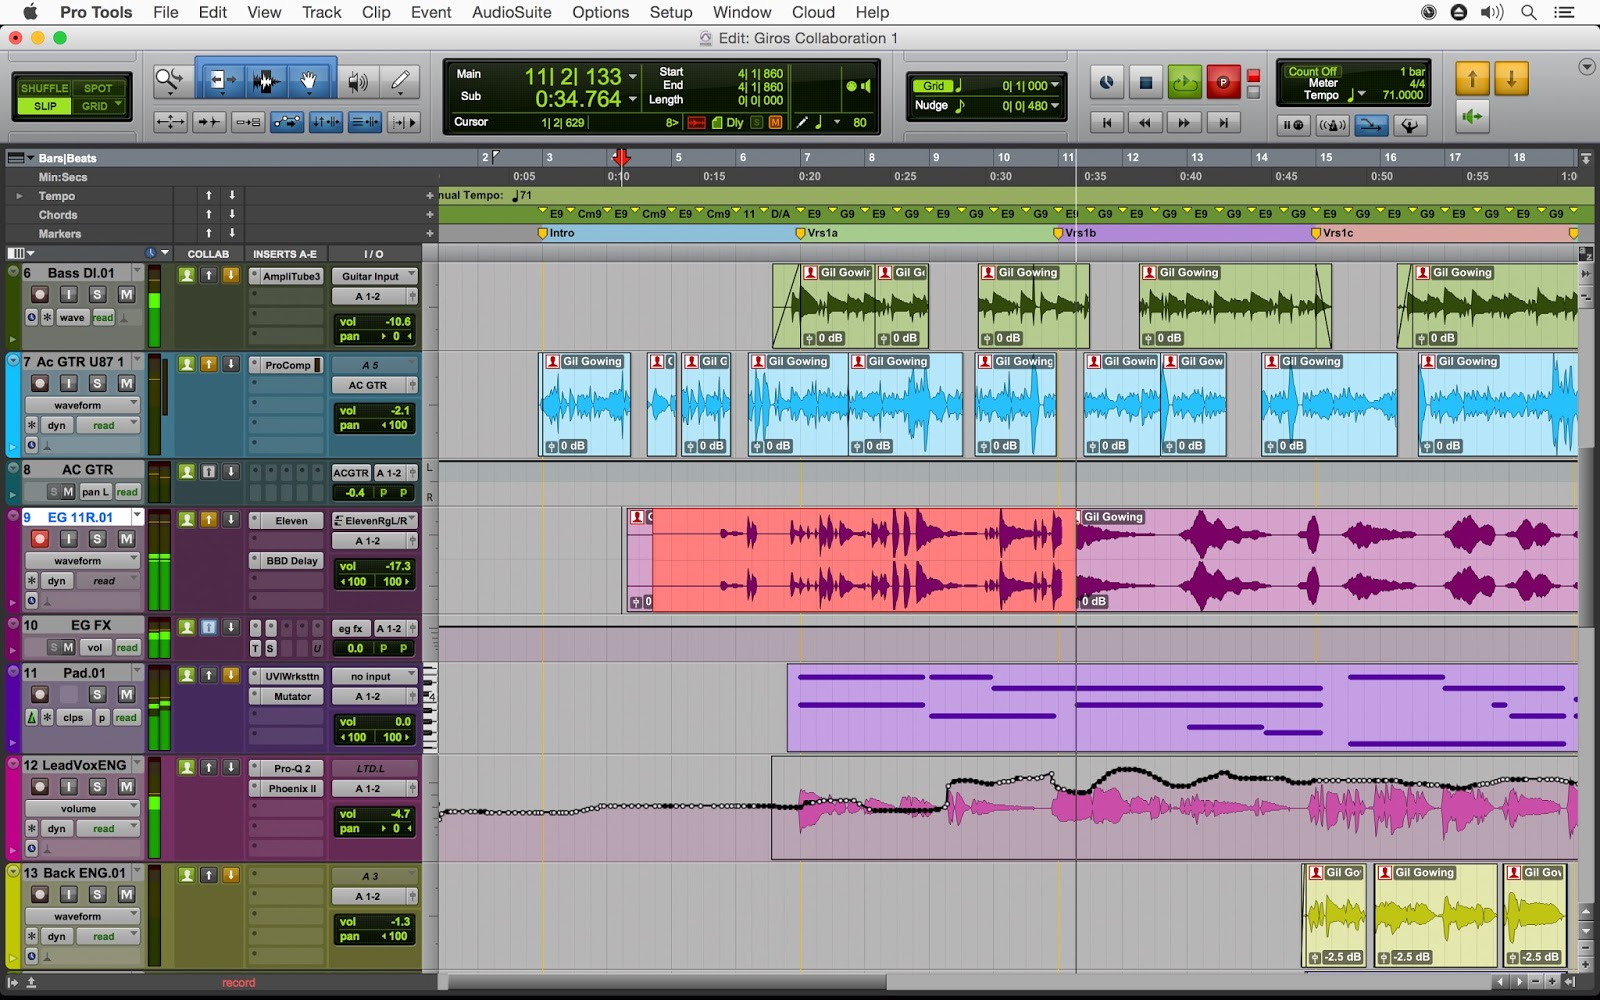 pro tools 10 crack download mac